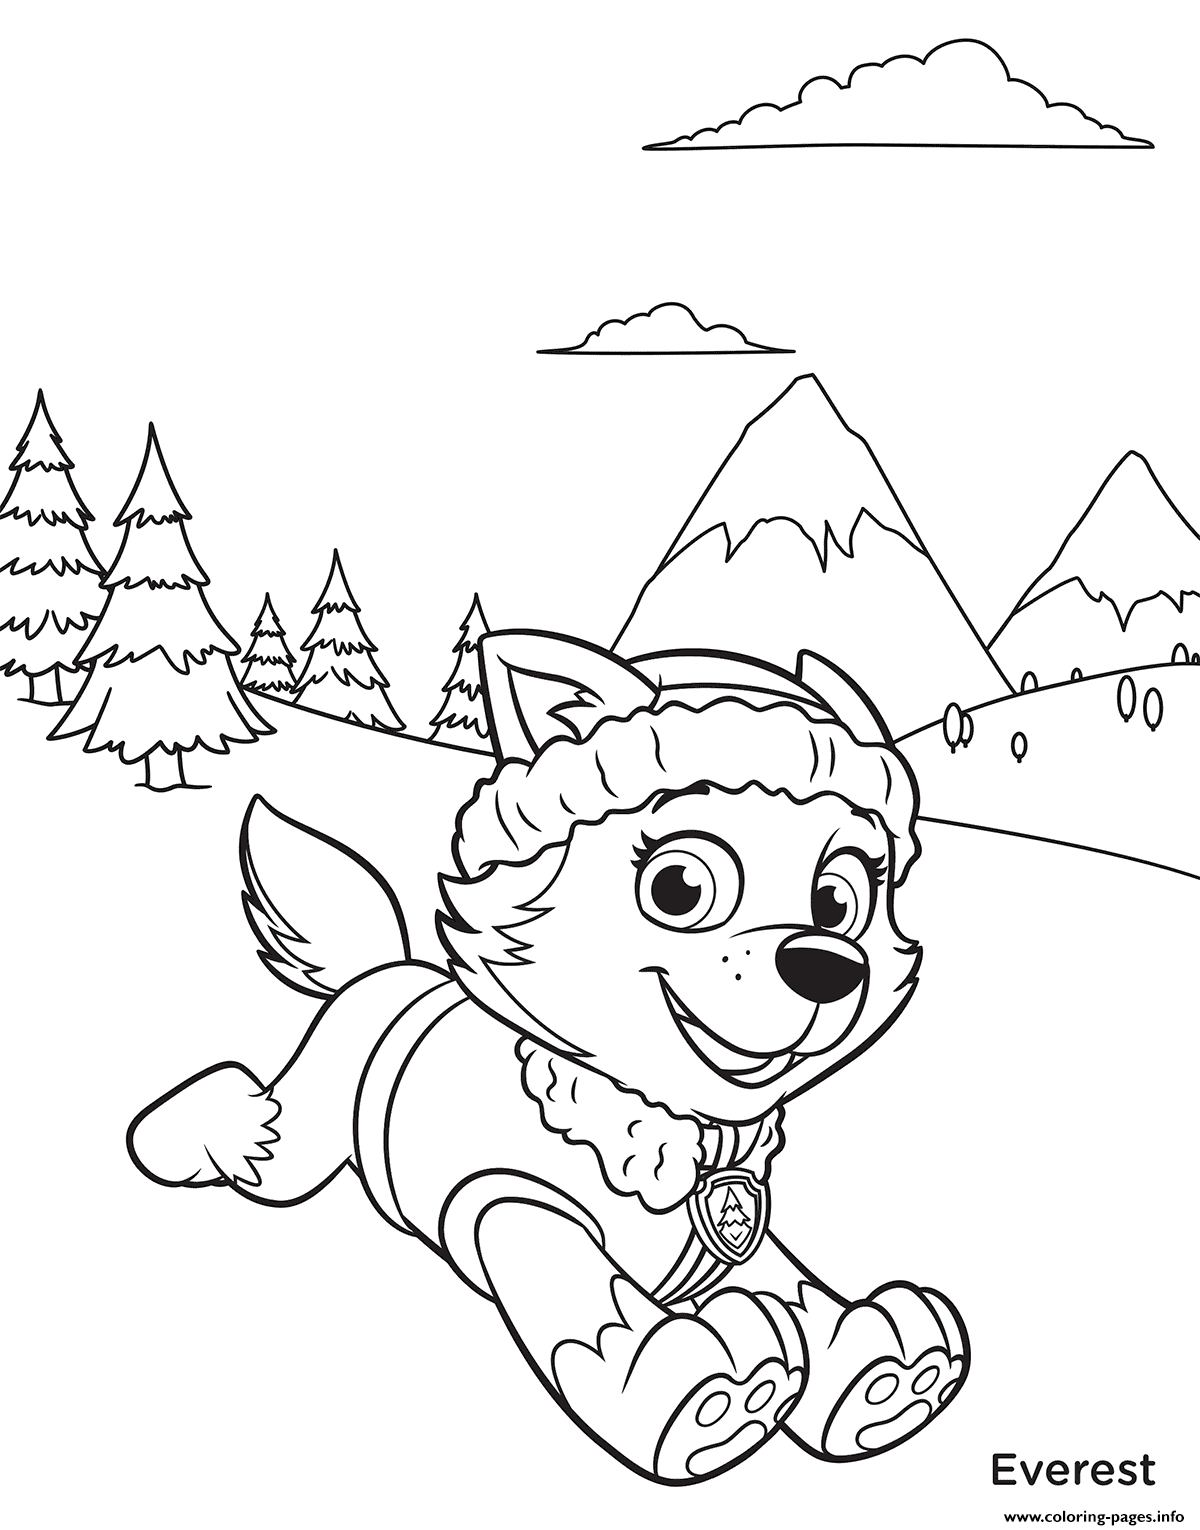 Paw Patrol Everest In Mountains Coloring Pages Printable